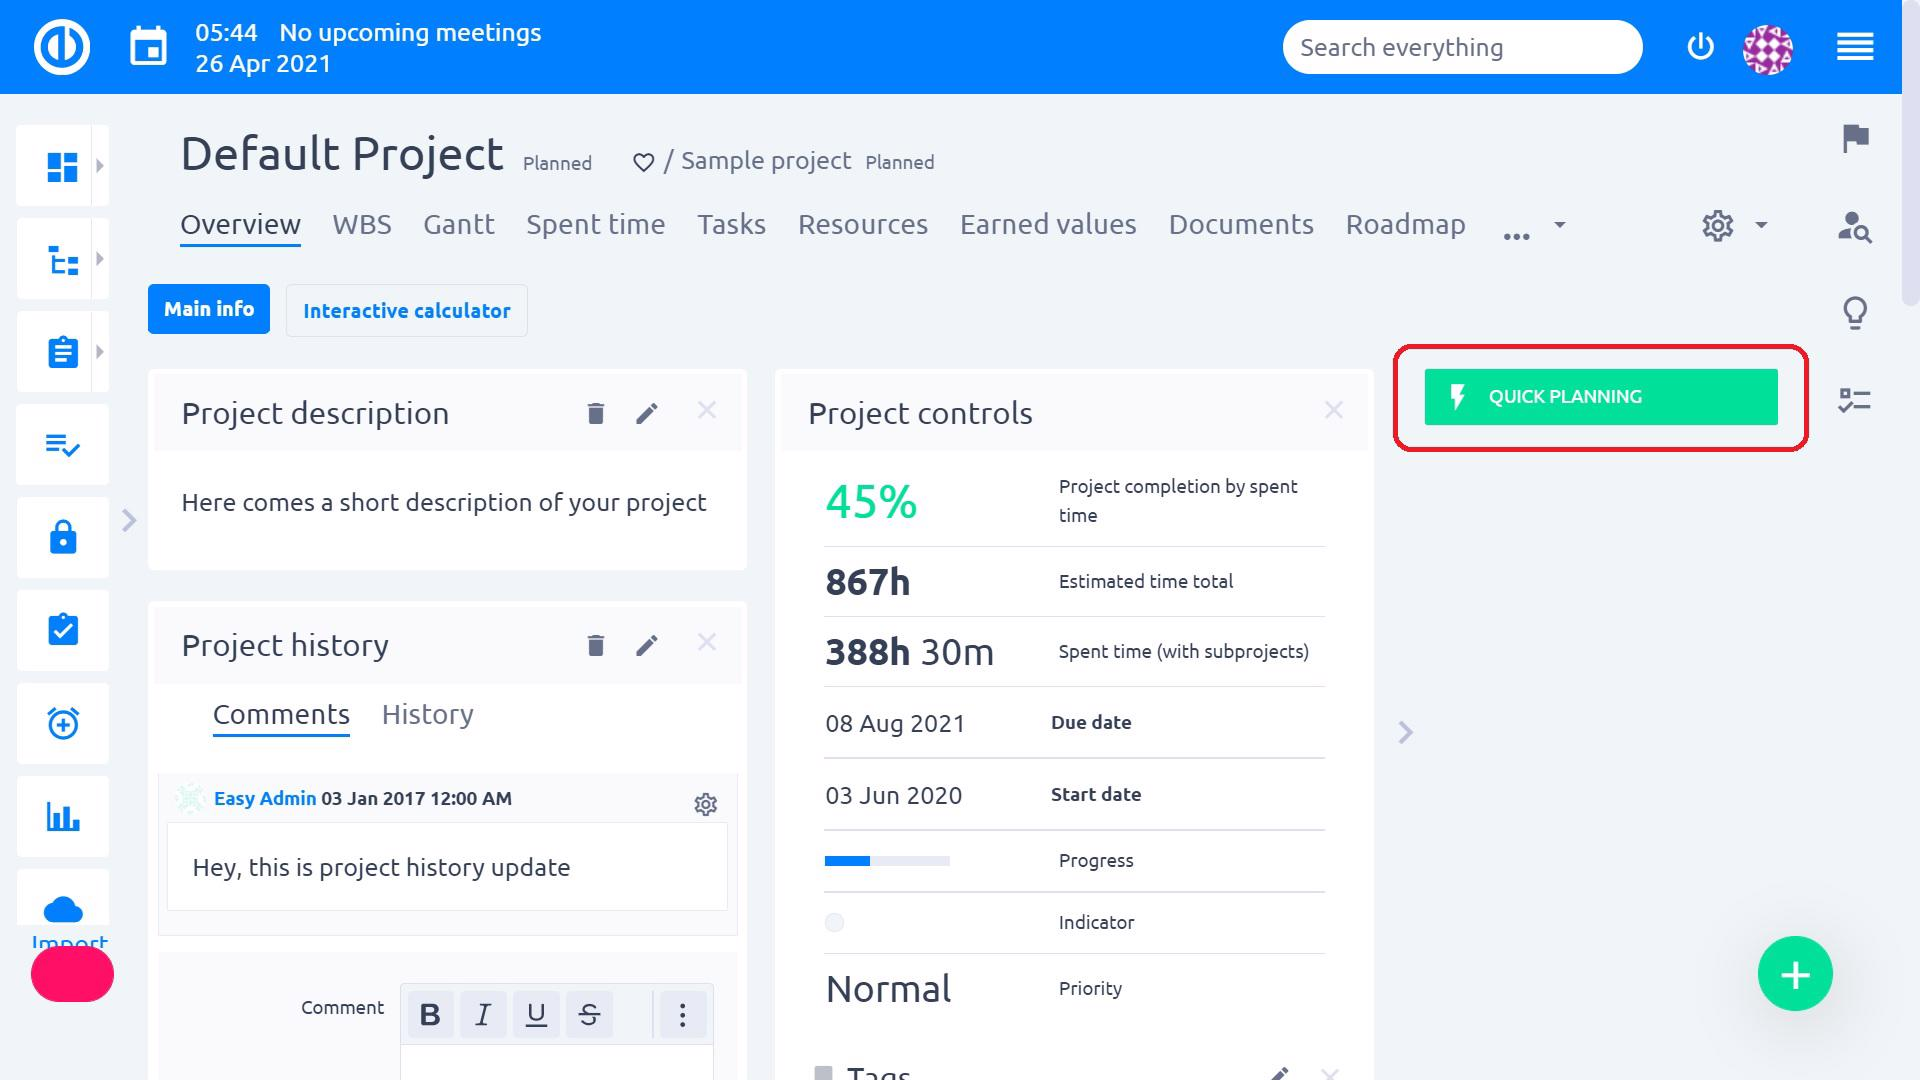 Easy Redmine 2018 - Quick project planner - Quick planning button